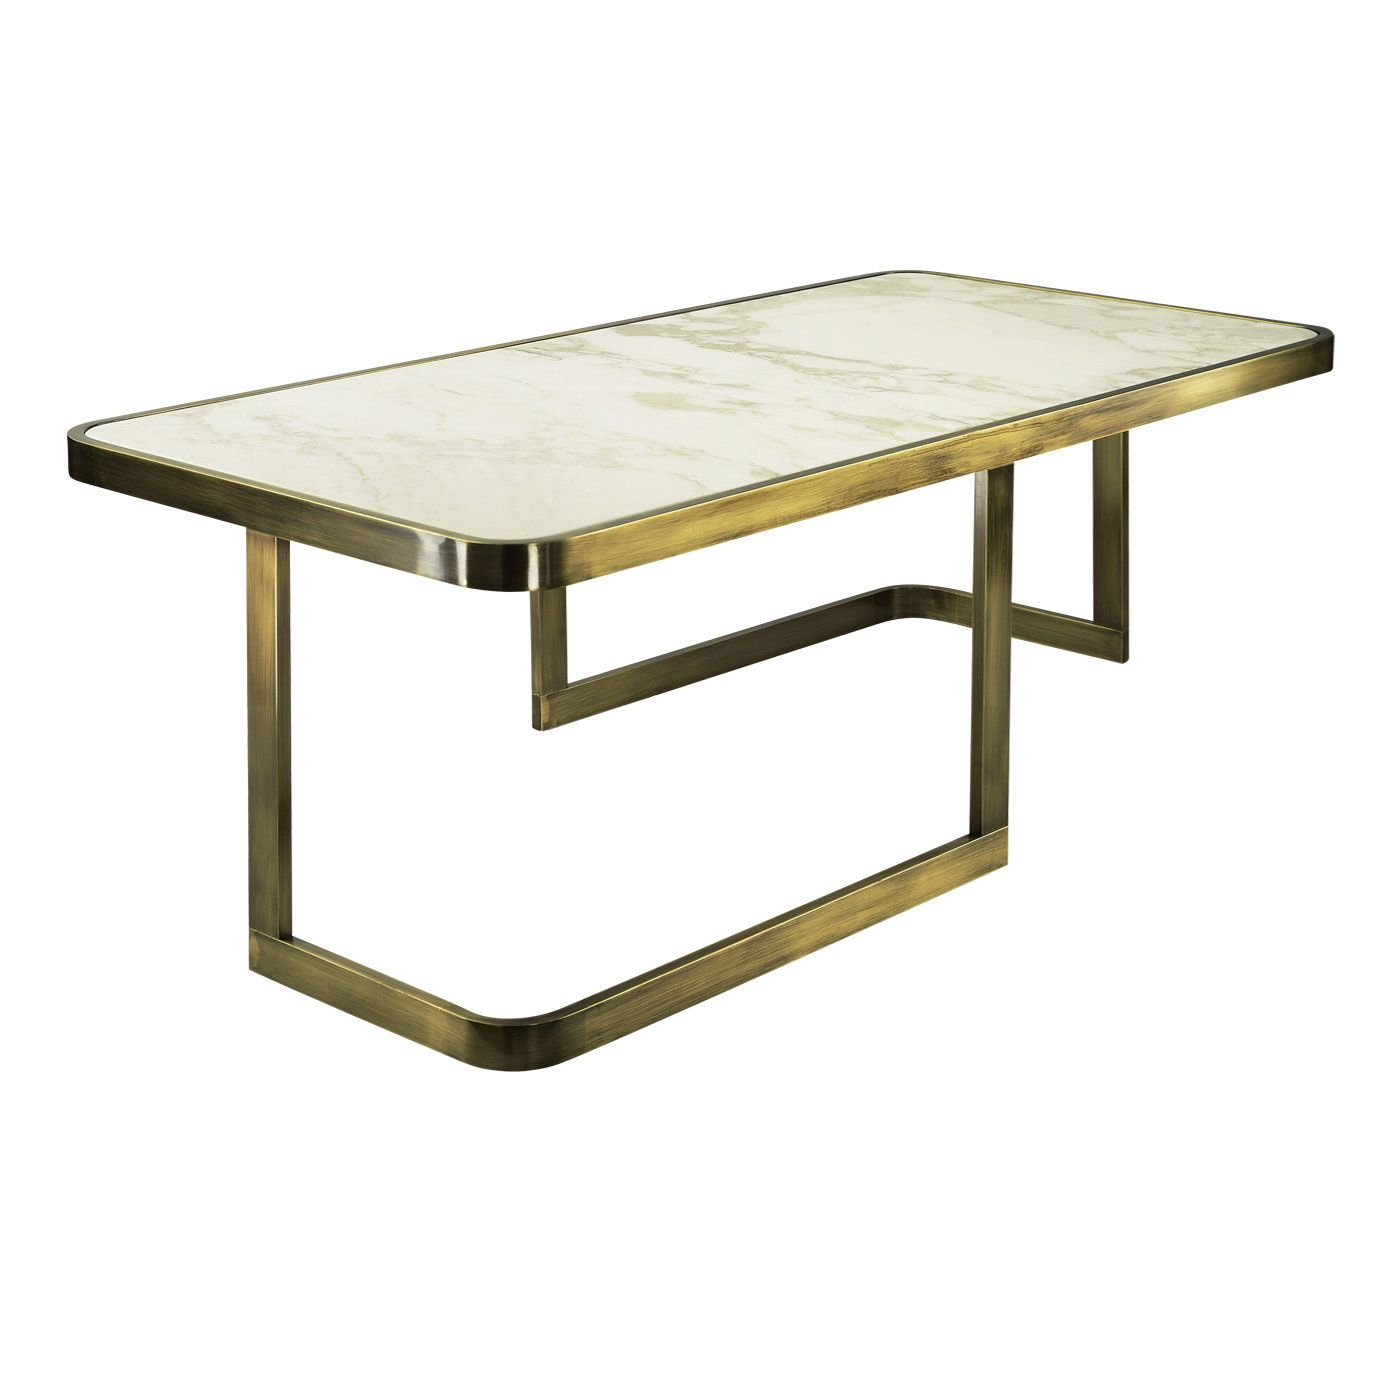 The Structure Of This Elegant Coffee Table In Brass Features Straight And Round Elements And Is